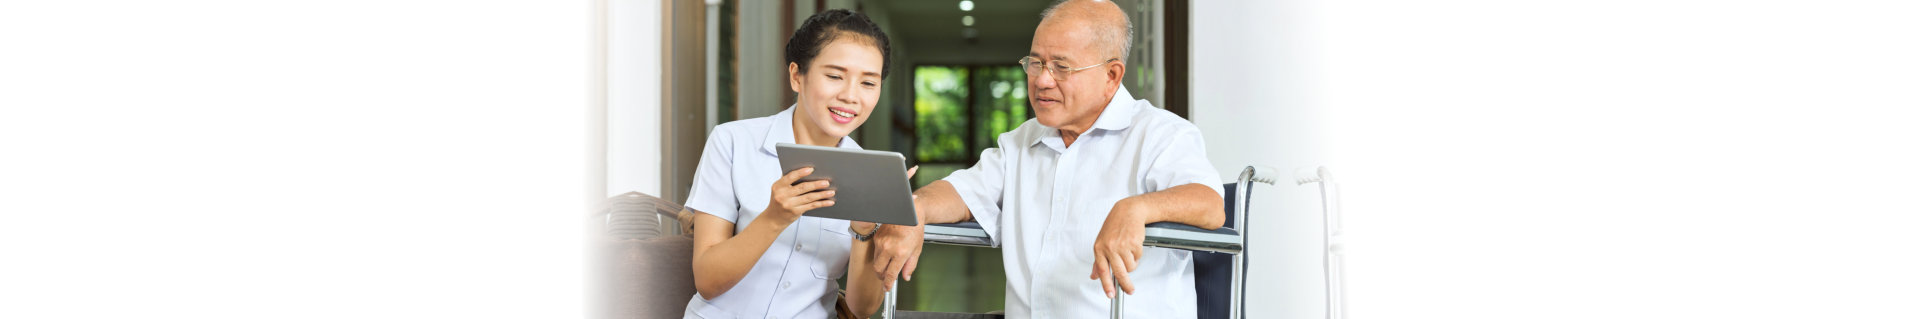 caregiver showing the tablet to the senior man